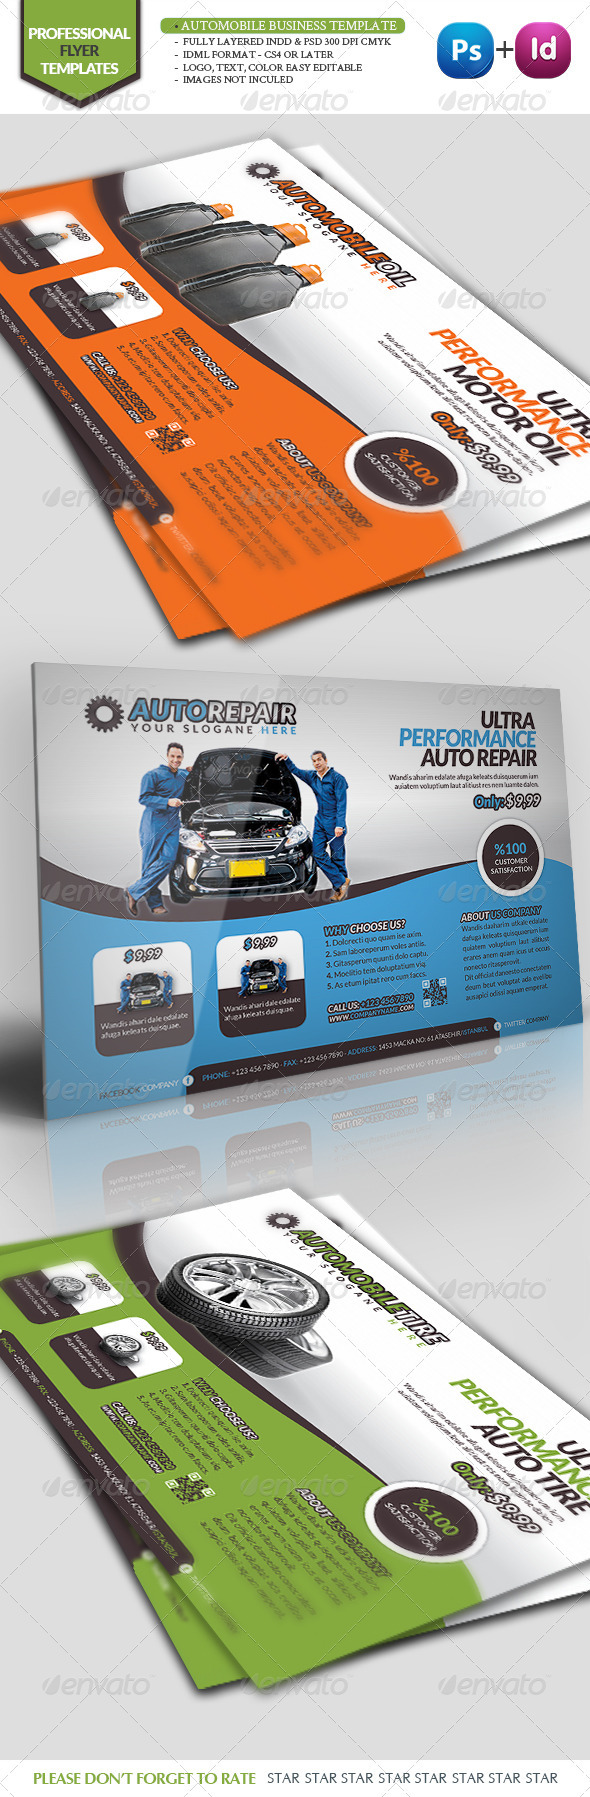 Automobile Business Template - Commerce Flyers